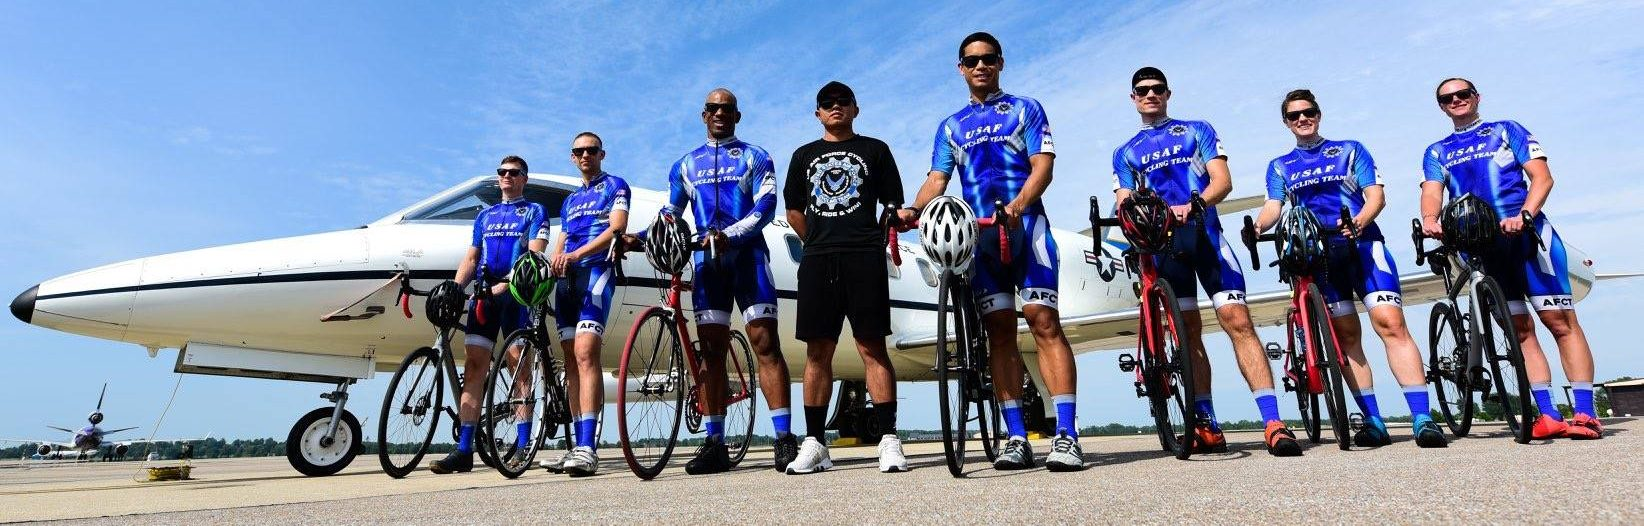 US Air Force Cycling Team